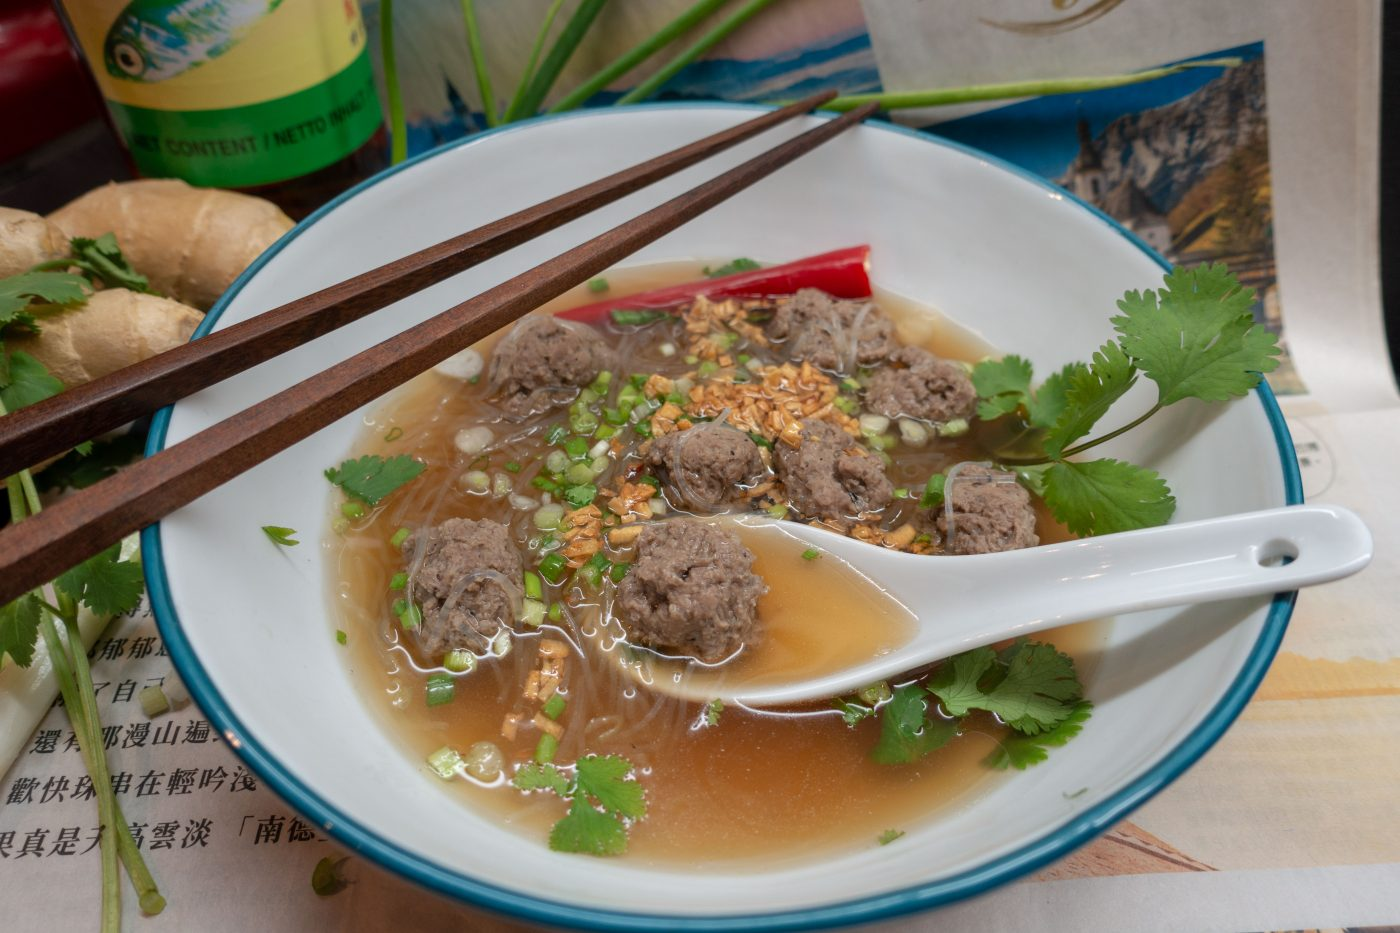 Thai glass noodle soup with meat balls